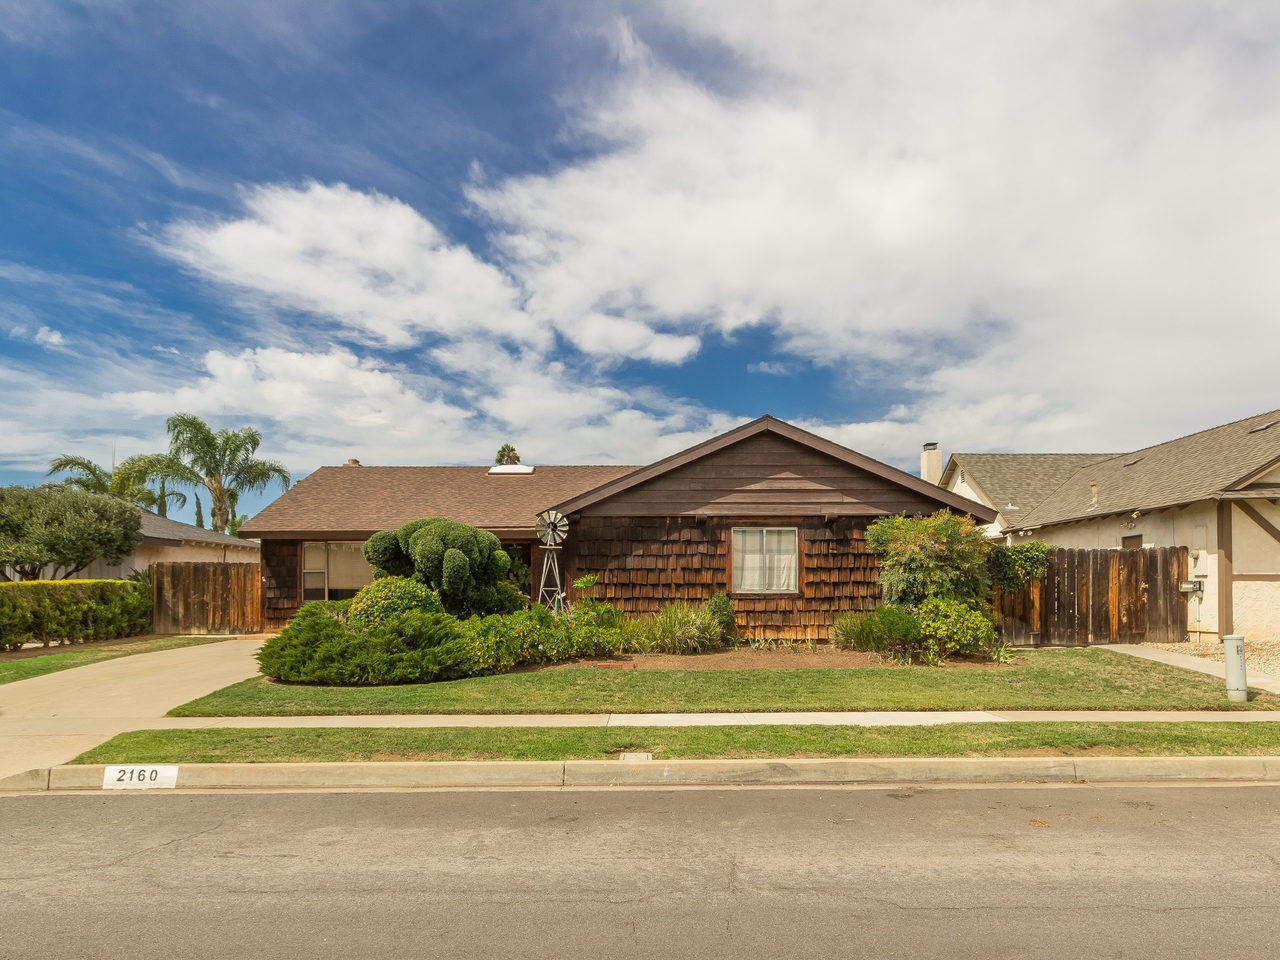 2160 Jefferson Avenue, Escondido, CA 92027